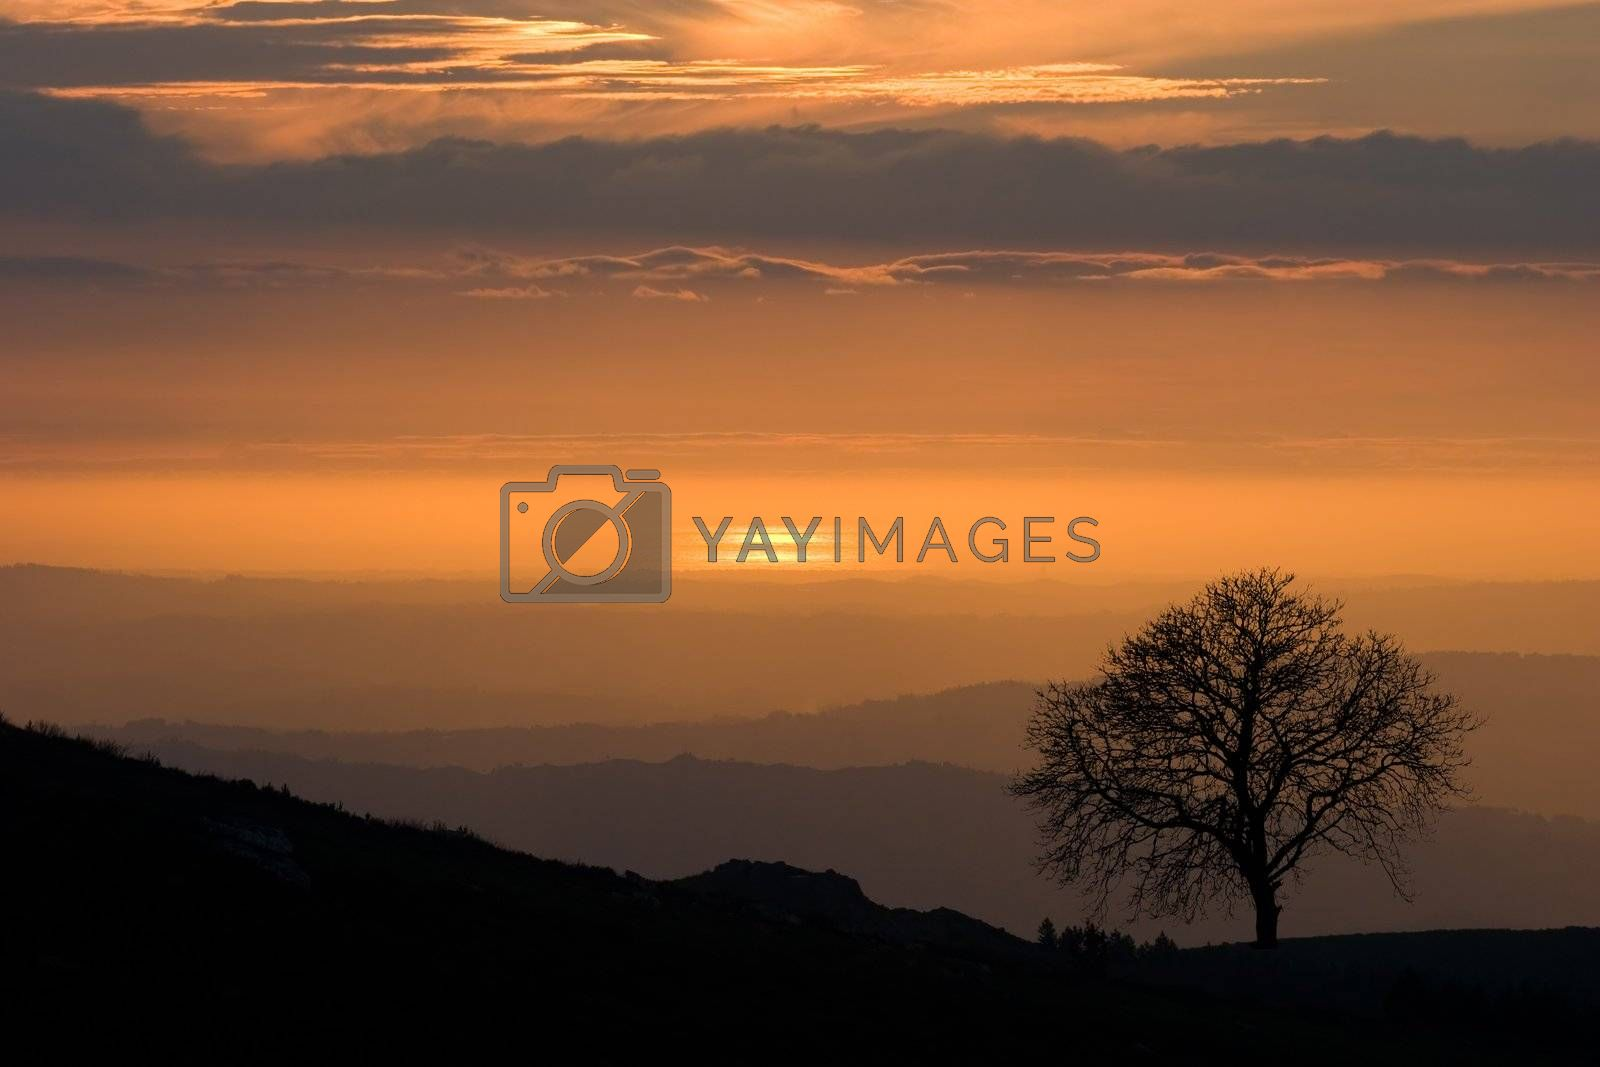 View over layered mountains on a beautiful Sunset with lonely tree on the horizon.